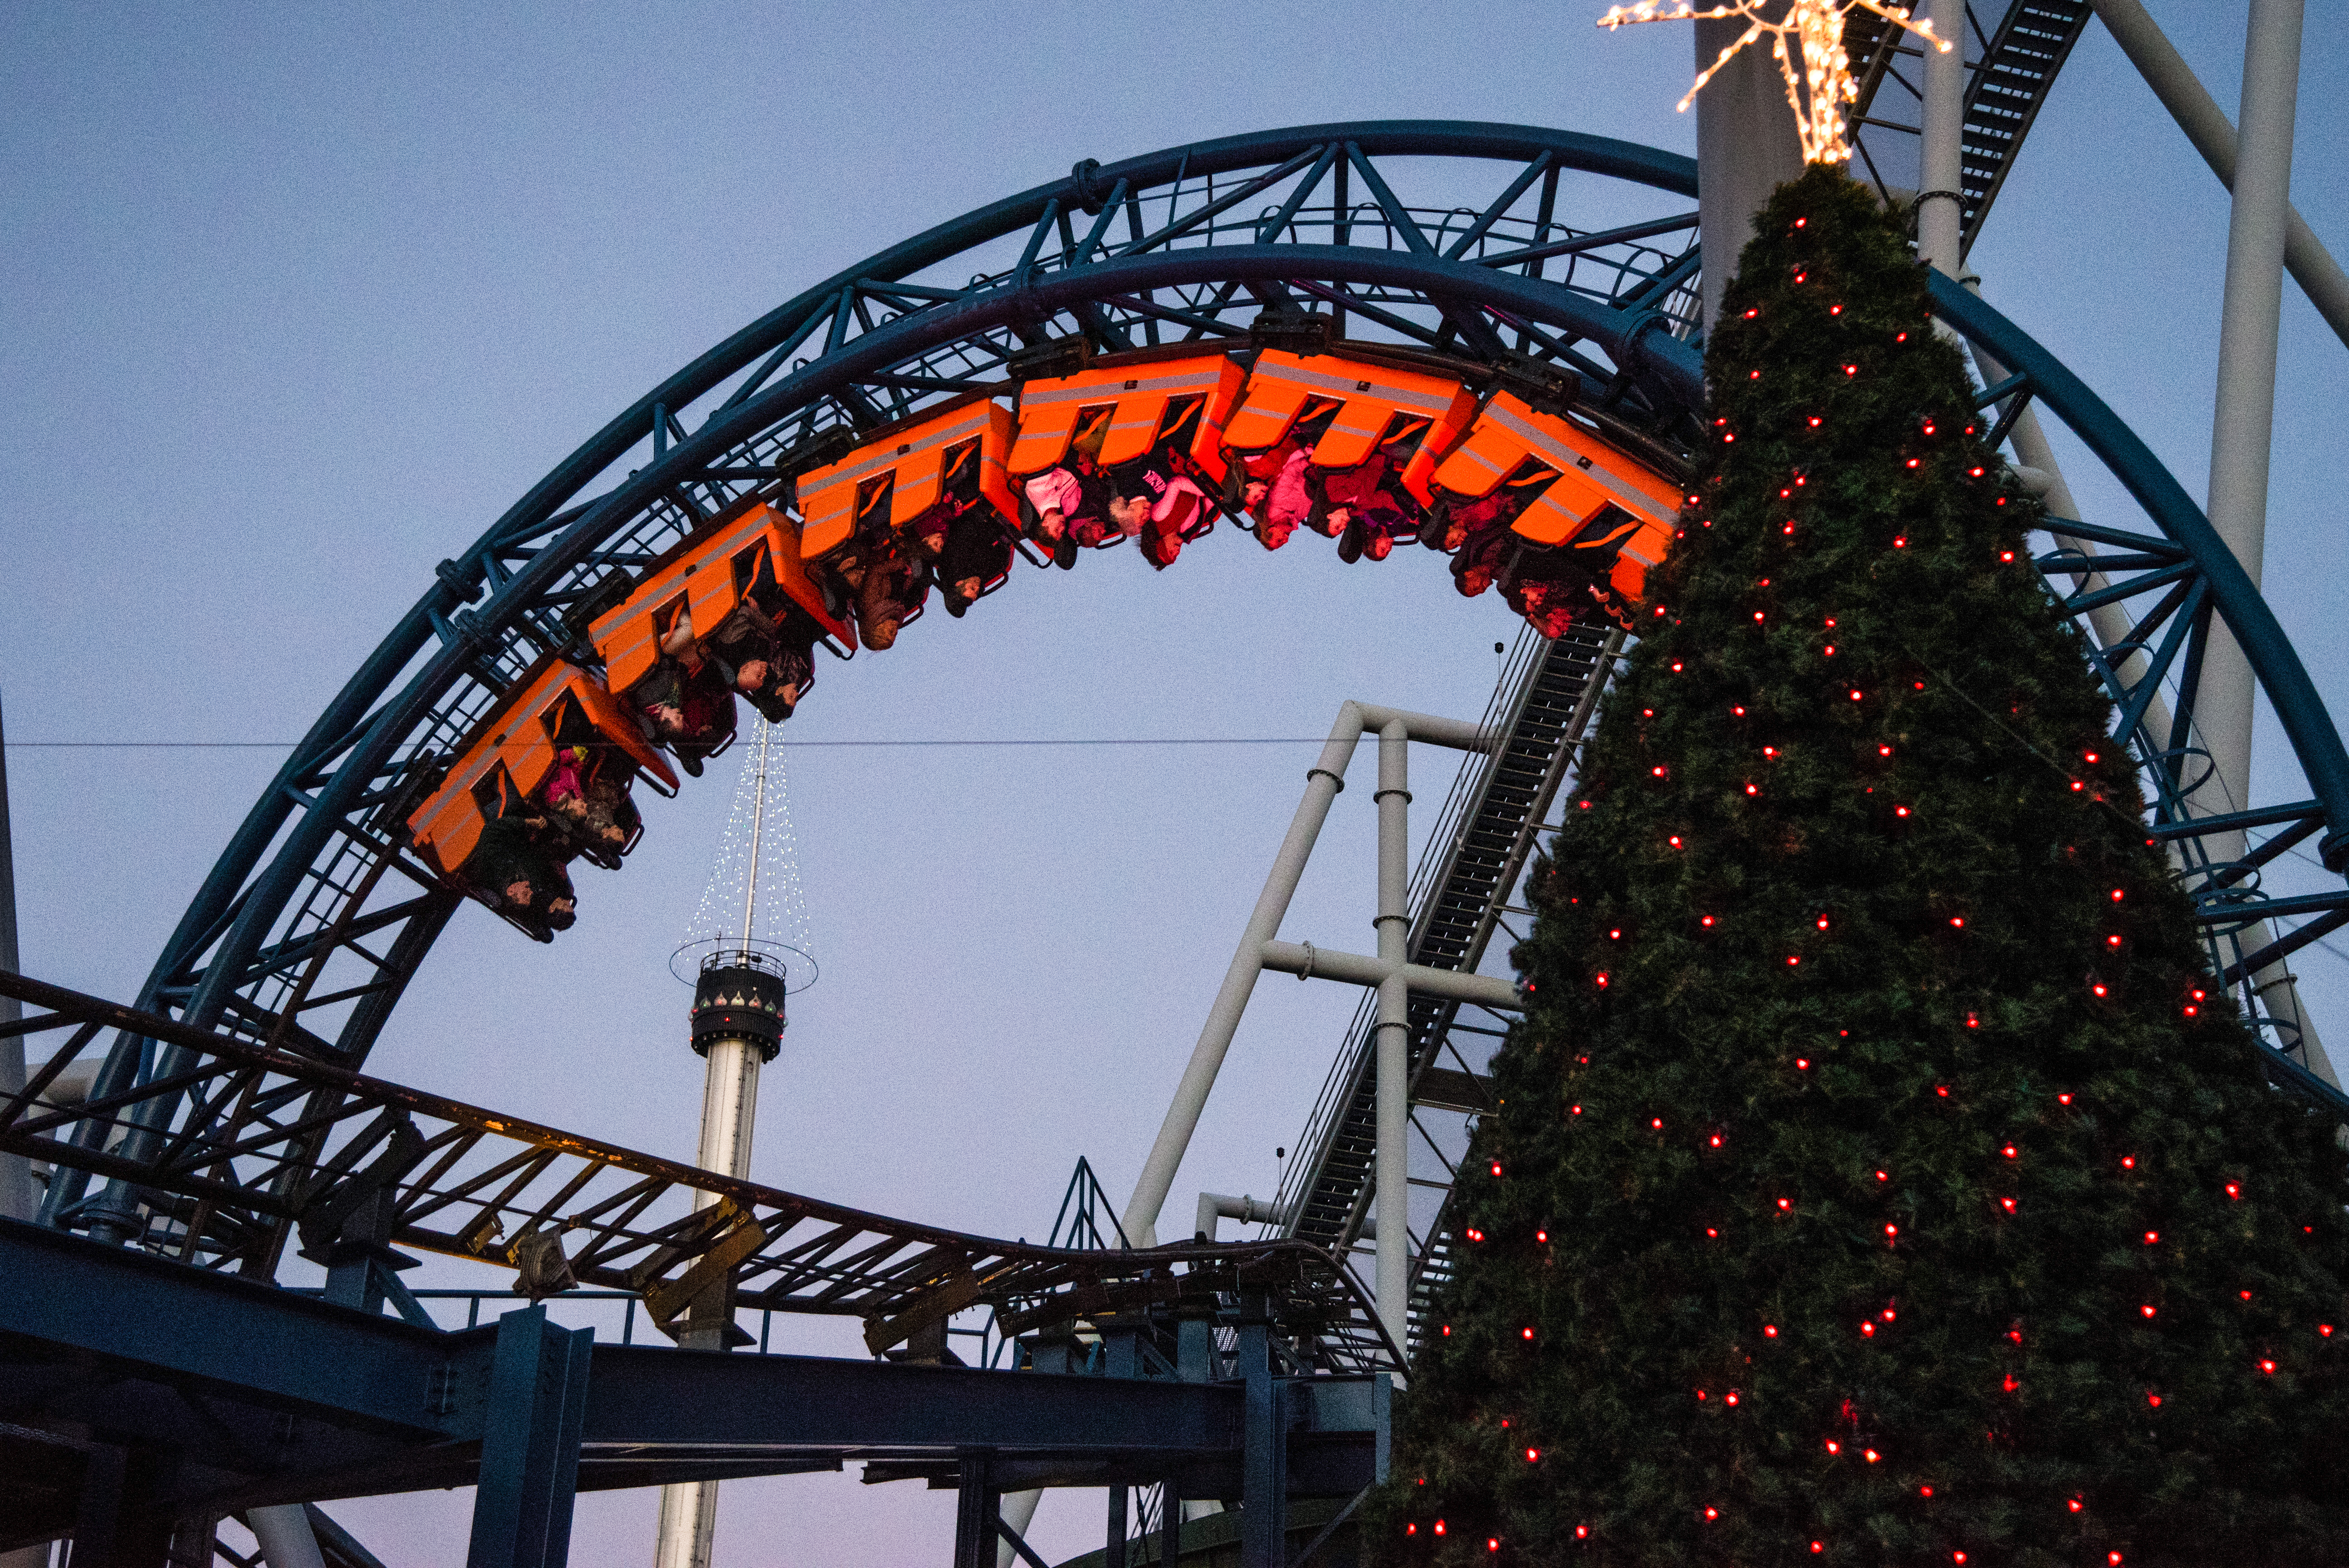 Ring in the New Year the Sweetest Way Possible - With a Trip to Hersheypark